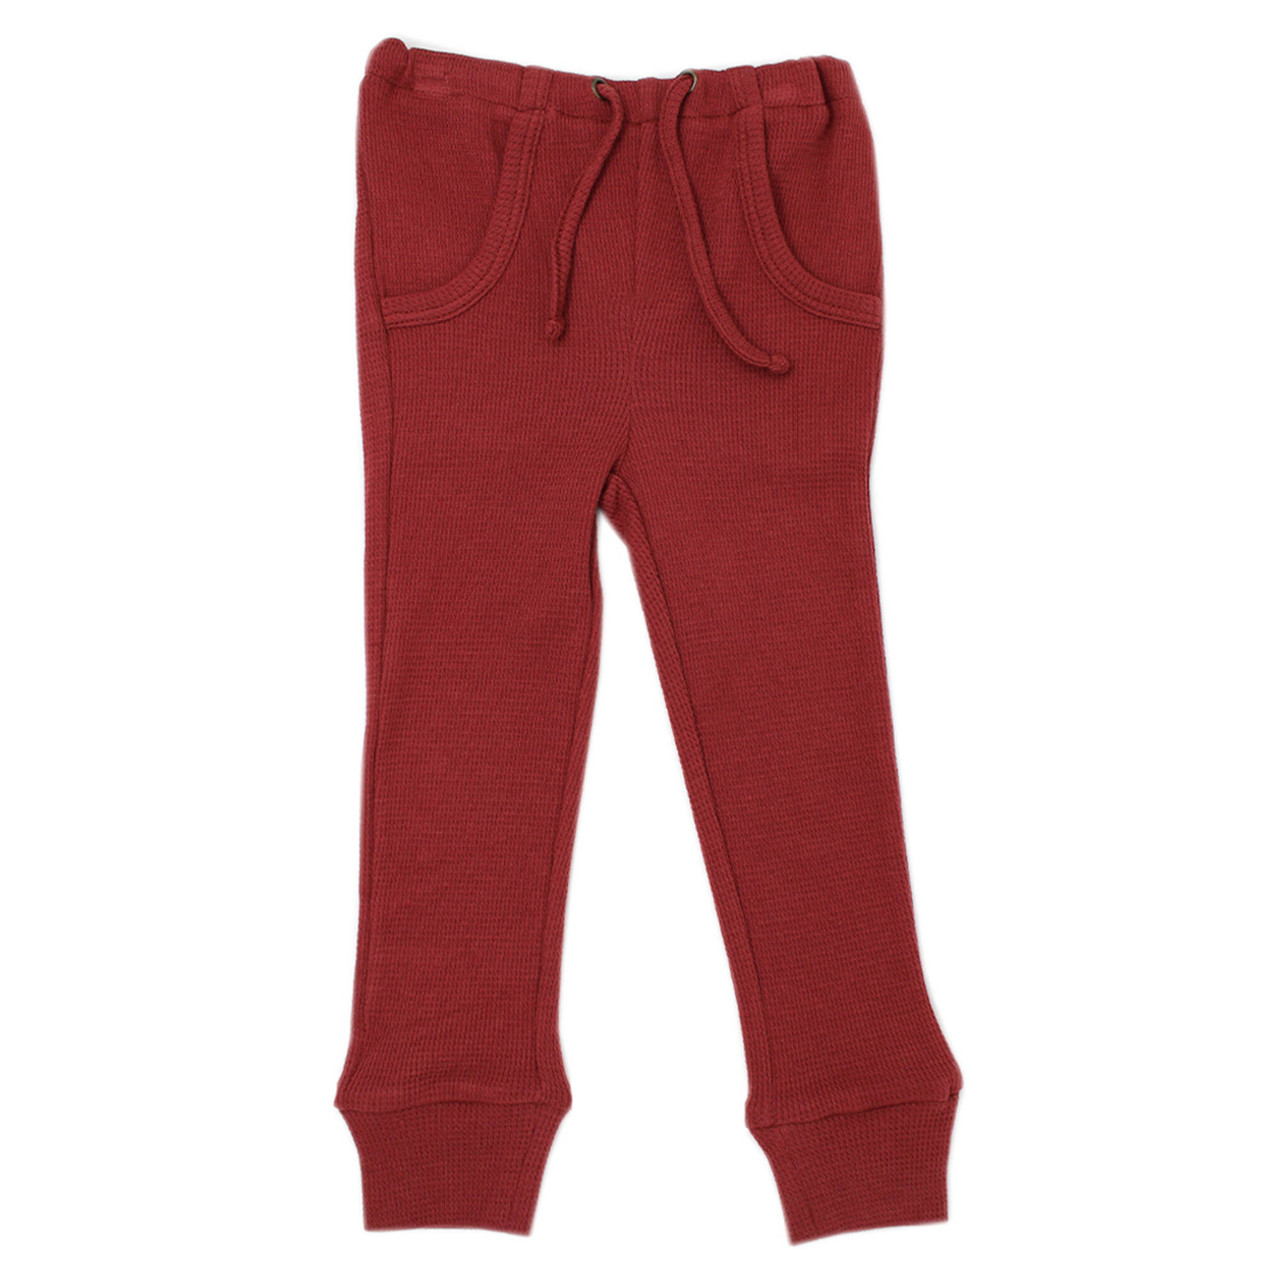 Organic Thermal Kids' Jogger Pants in Brick, Flat